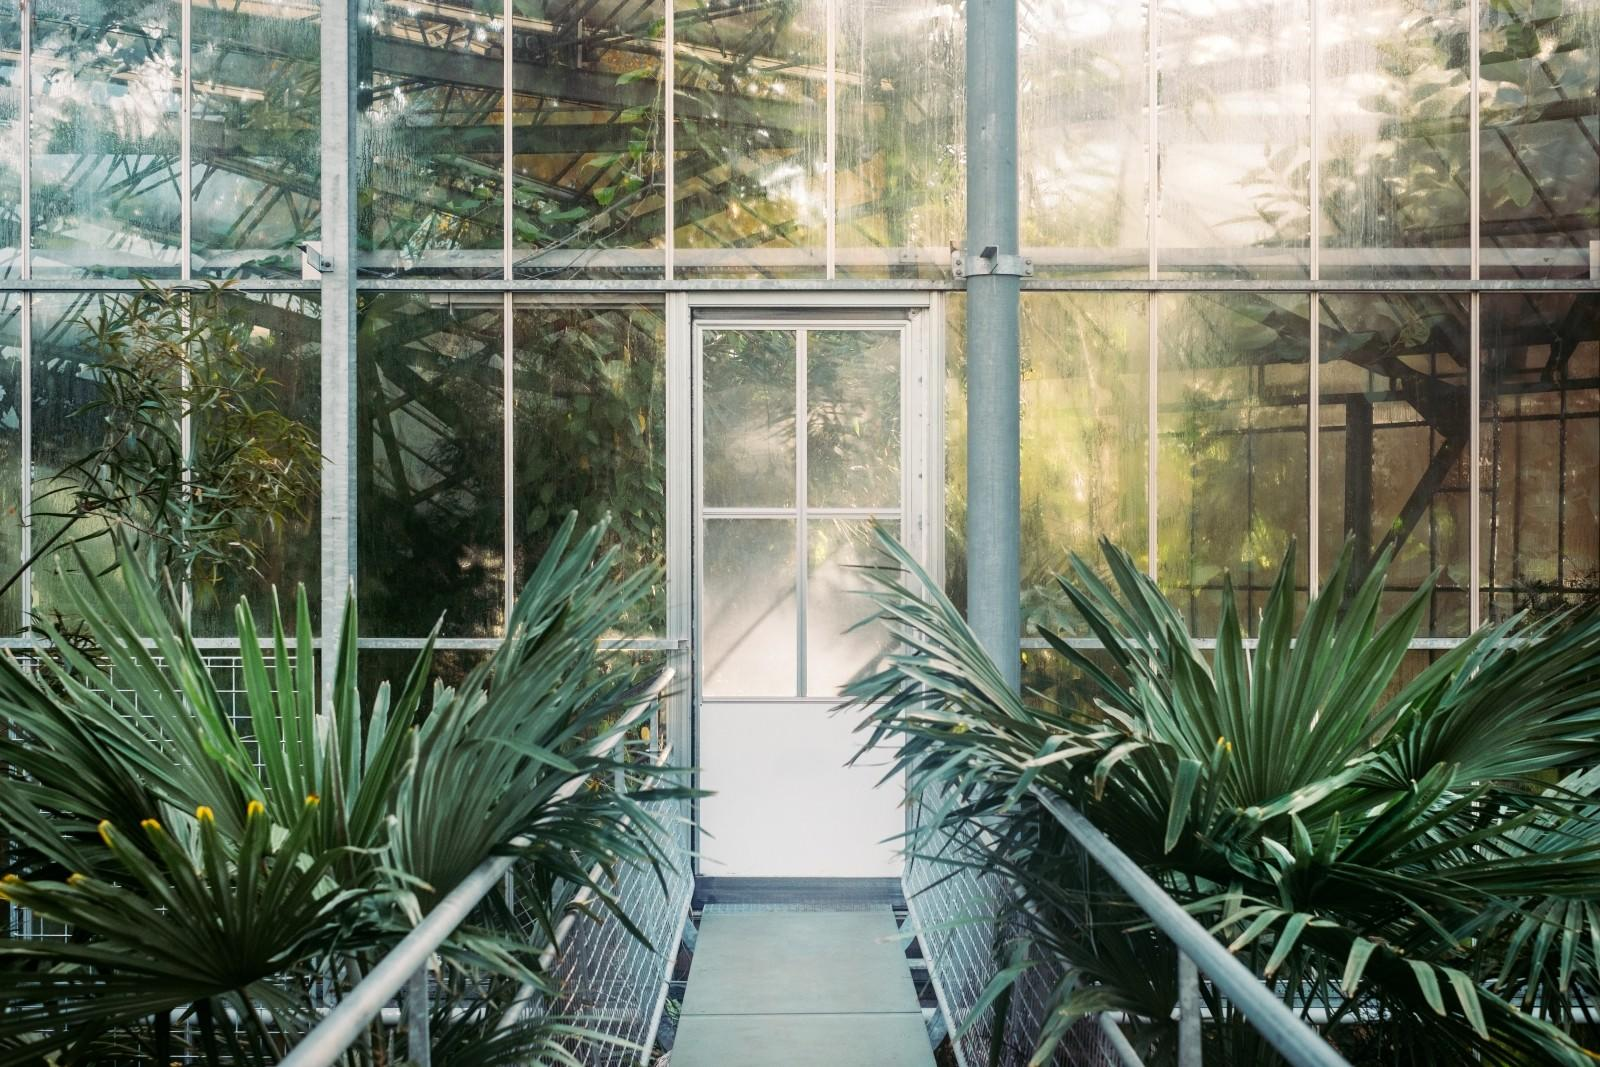 glasshouse conservatory greenhouse